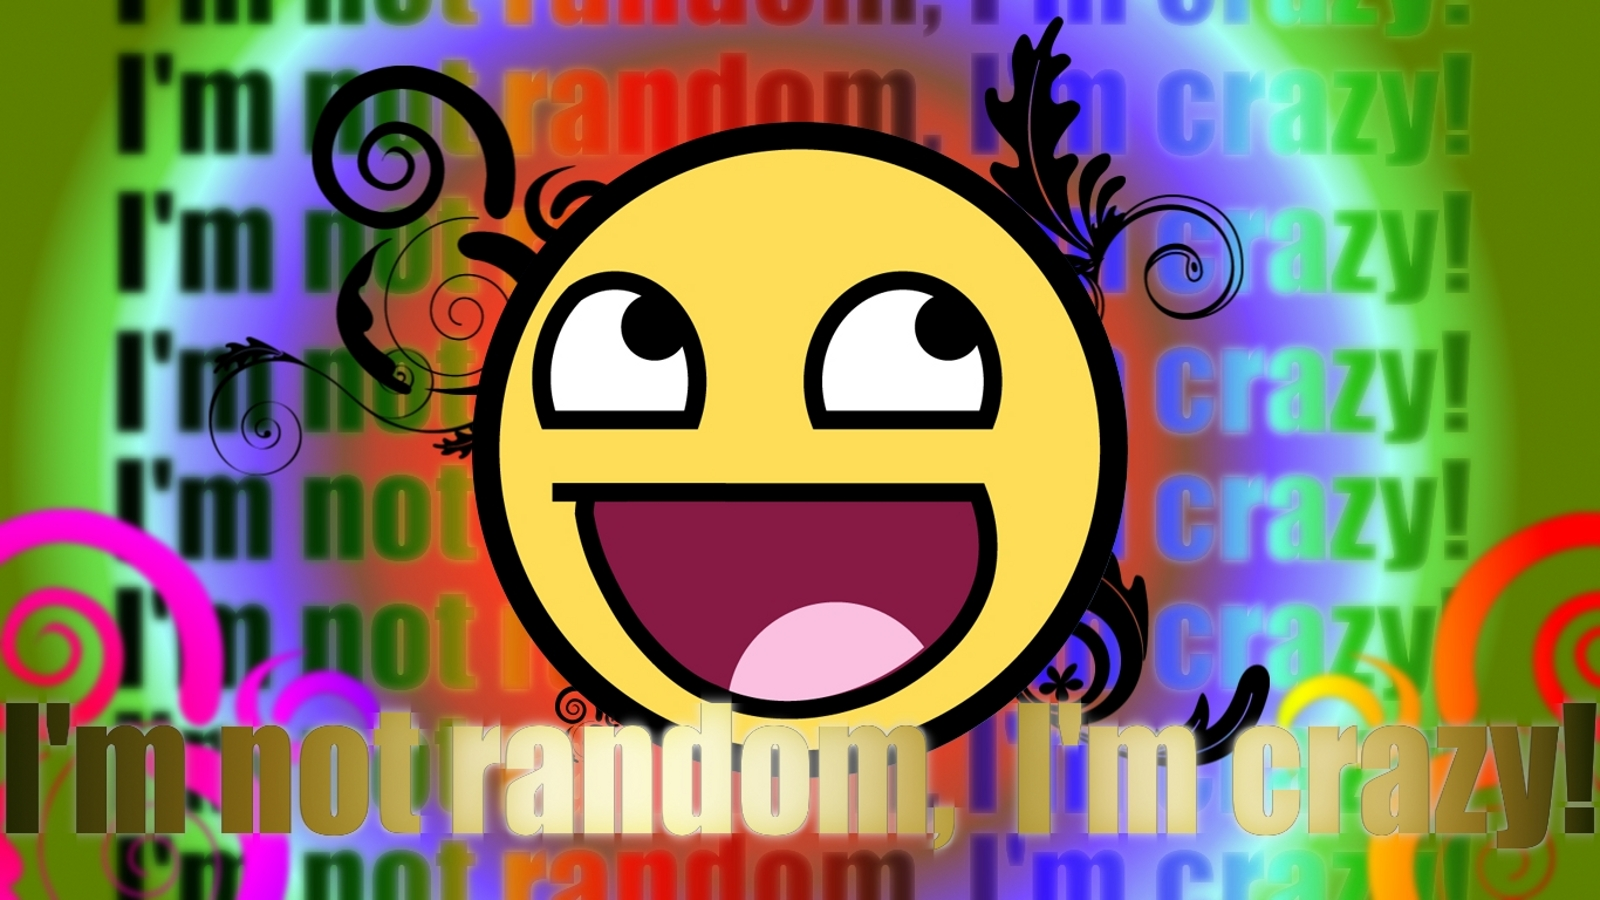 Smiley Full Hd Wallpaper And Achtergrond: Smiley Wallpaper And Achtergrond